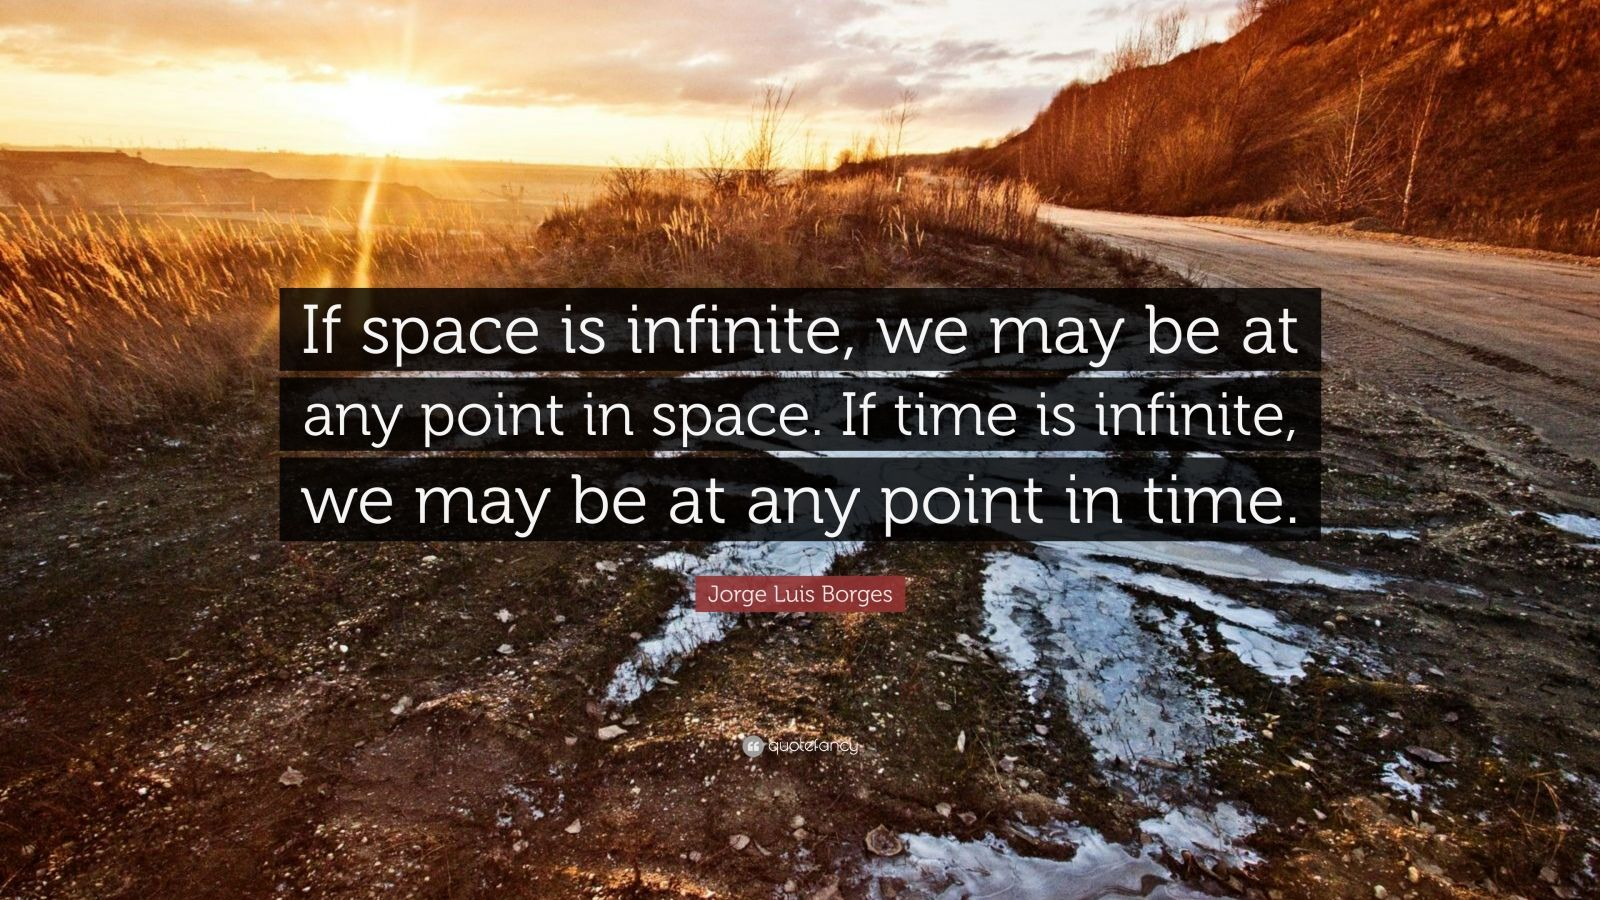 """Jorge Luis Borges Quote: """"If space is infinite, we may be at any point in space. If time is infinite, we may be at any point in time."""""""